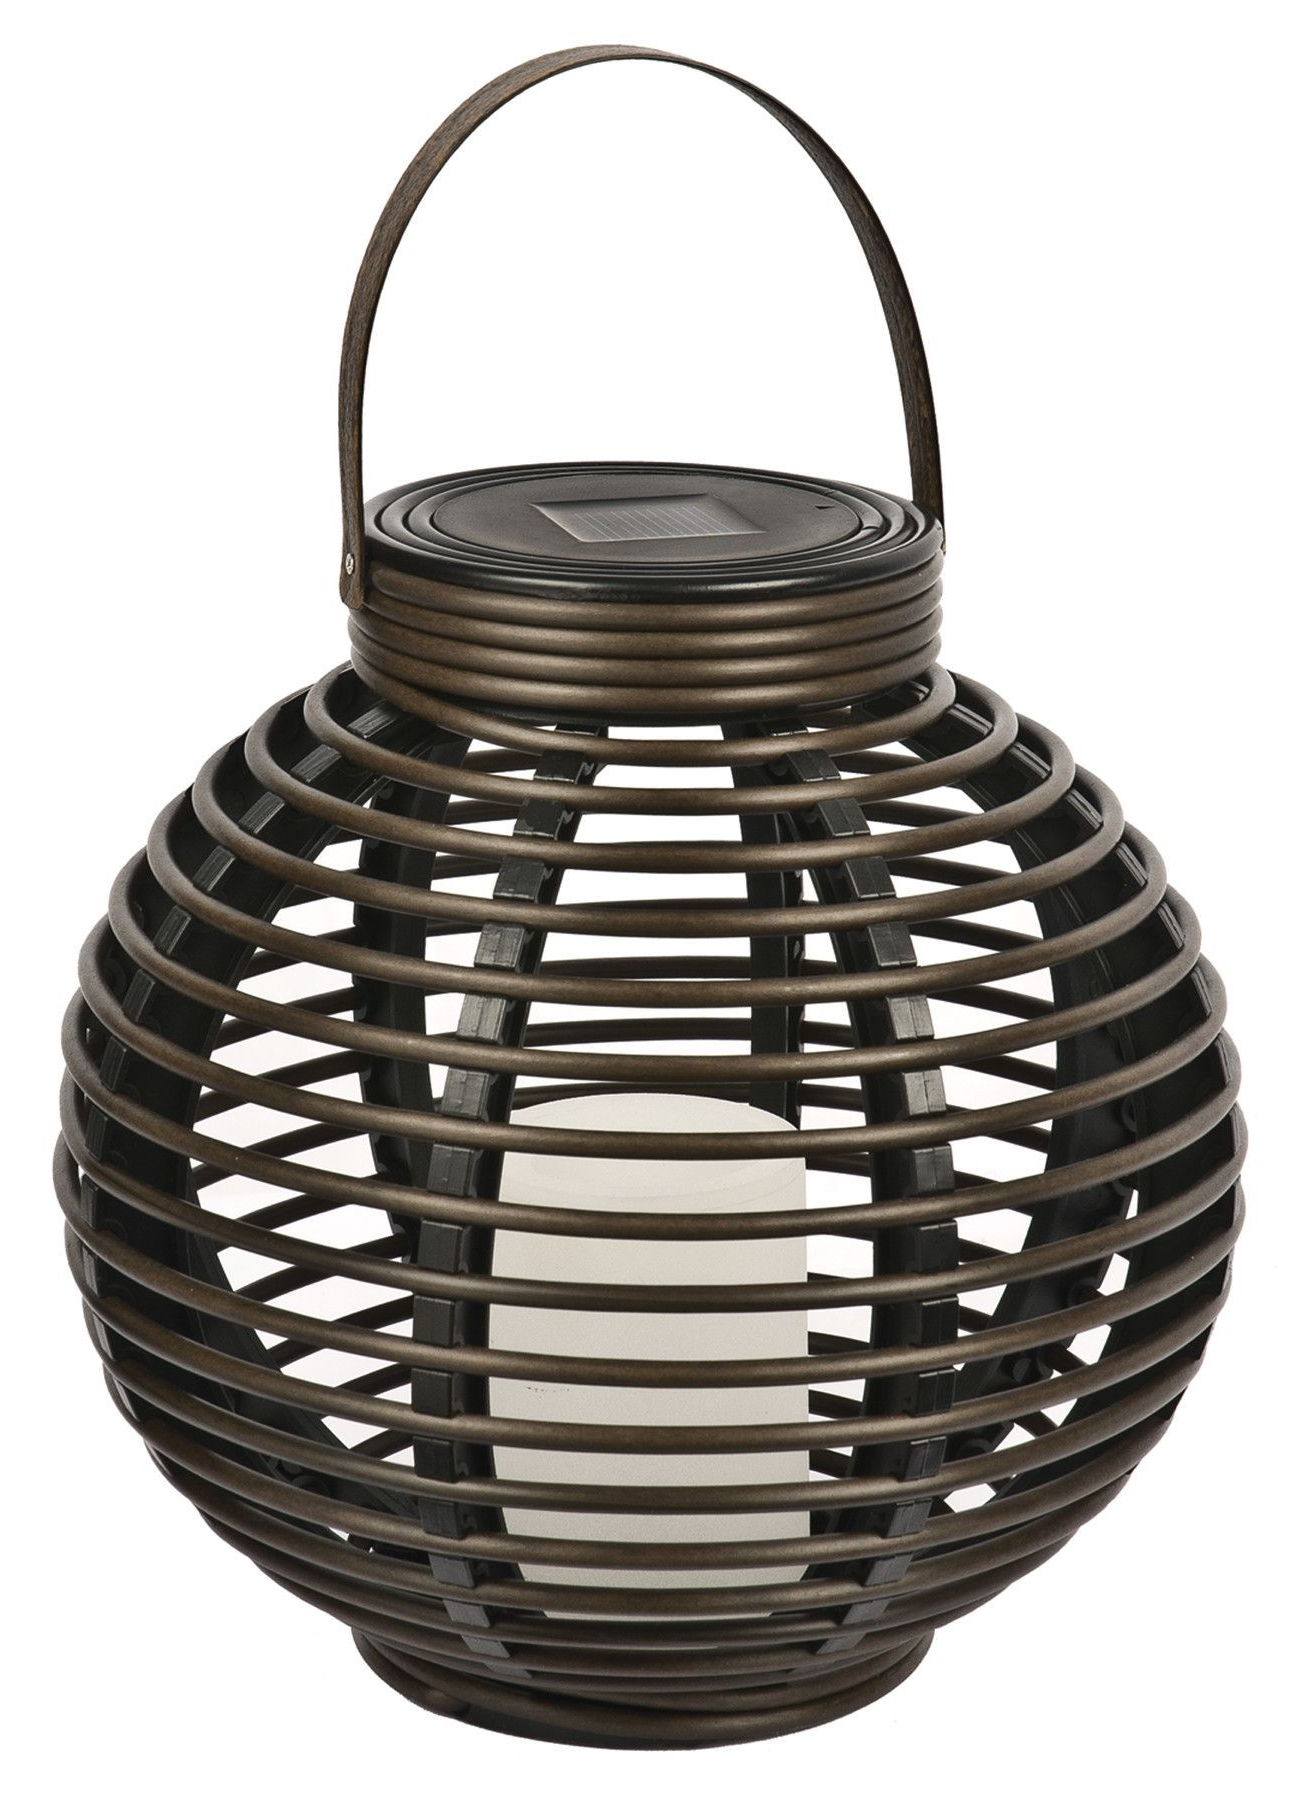 Solar Flickering Basket Hanging Plastic Lantern Rattan And Intended For Current Outdoor Rattan Lanterns (View 18 of 20)